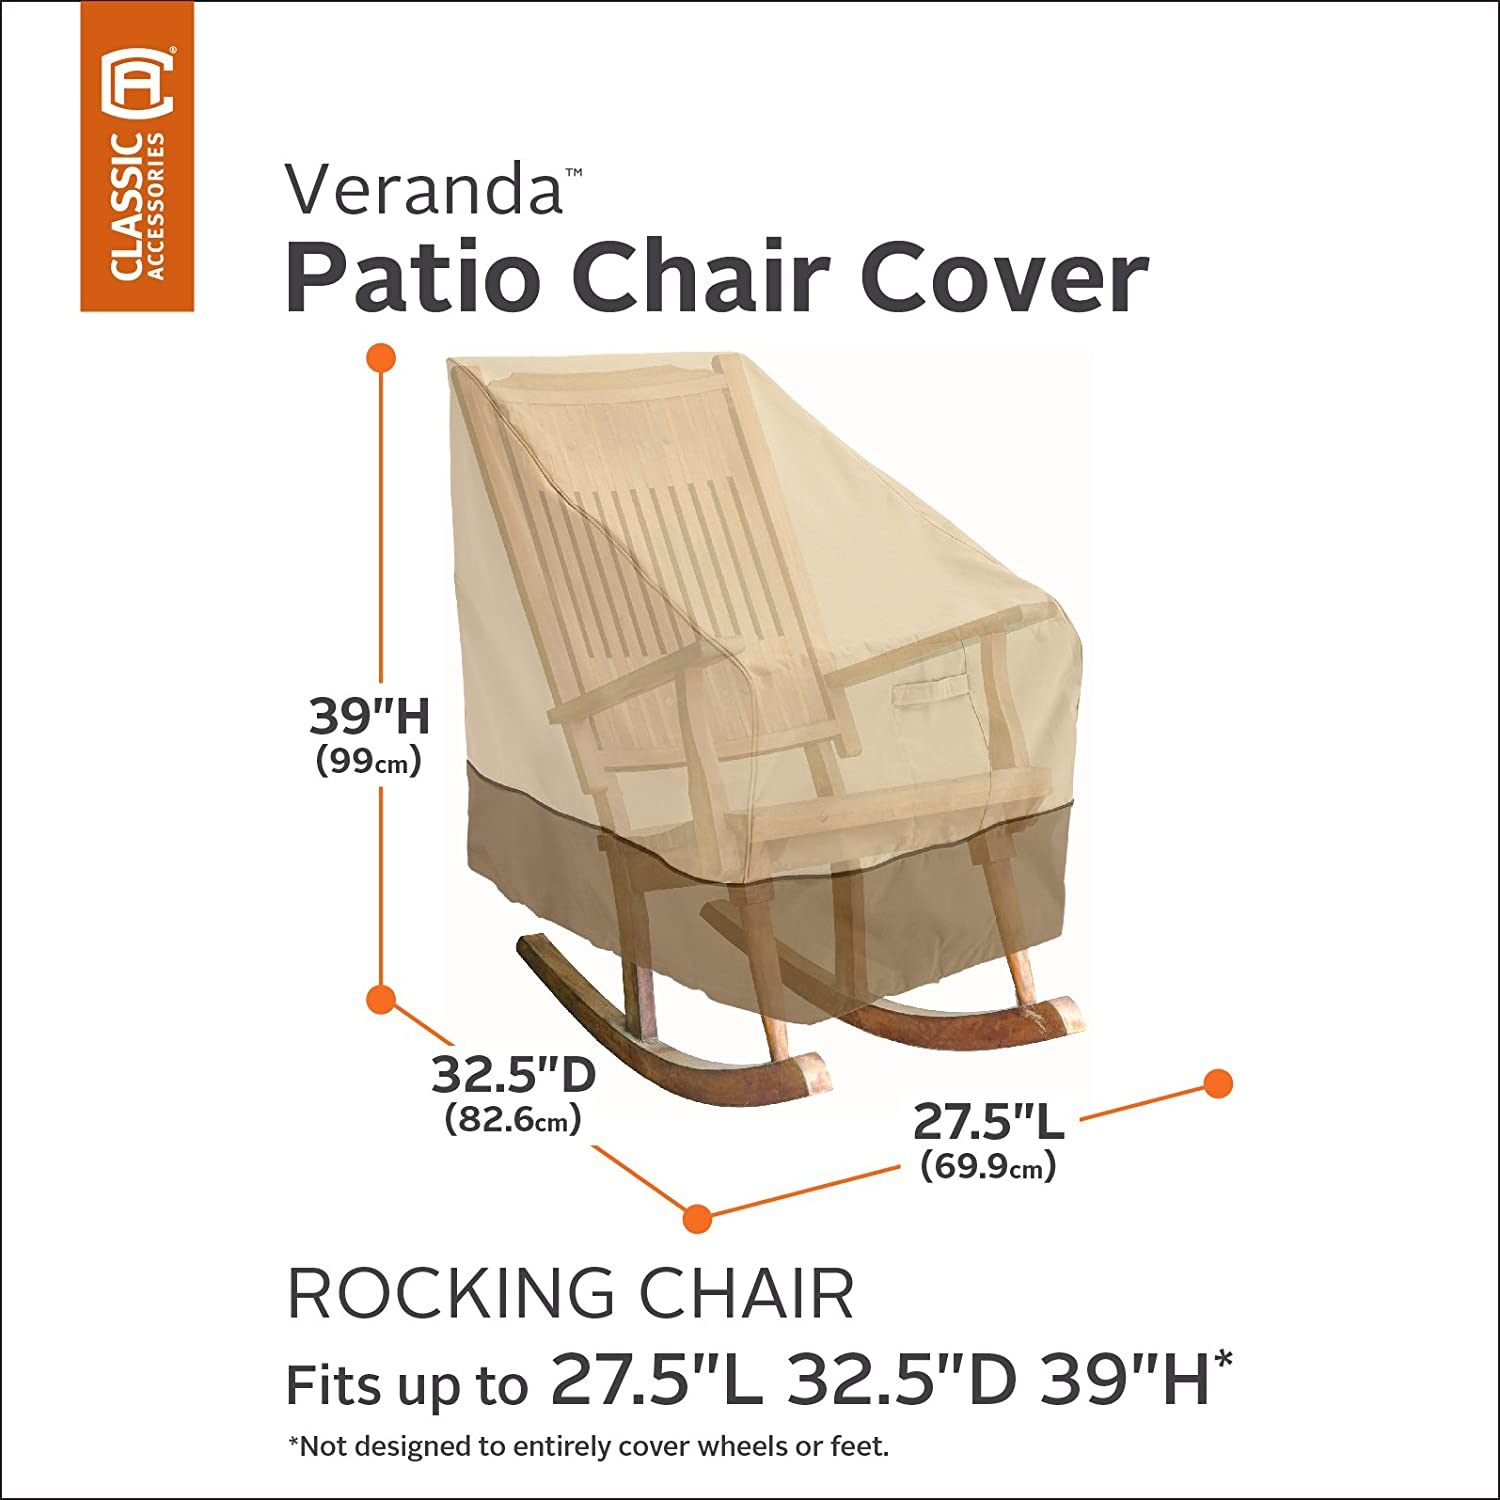 Amazon.com : Classic Accessories Veranda Patio Rocking Chair Cover    Durable And Water Resistant Outdoor Furniture Cover, Medium (70952) : Patio  Chair ...